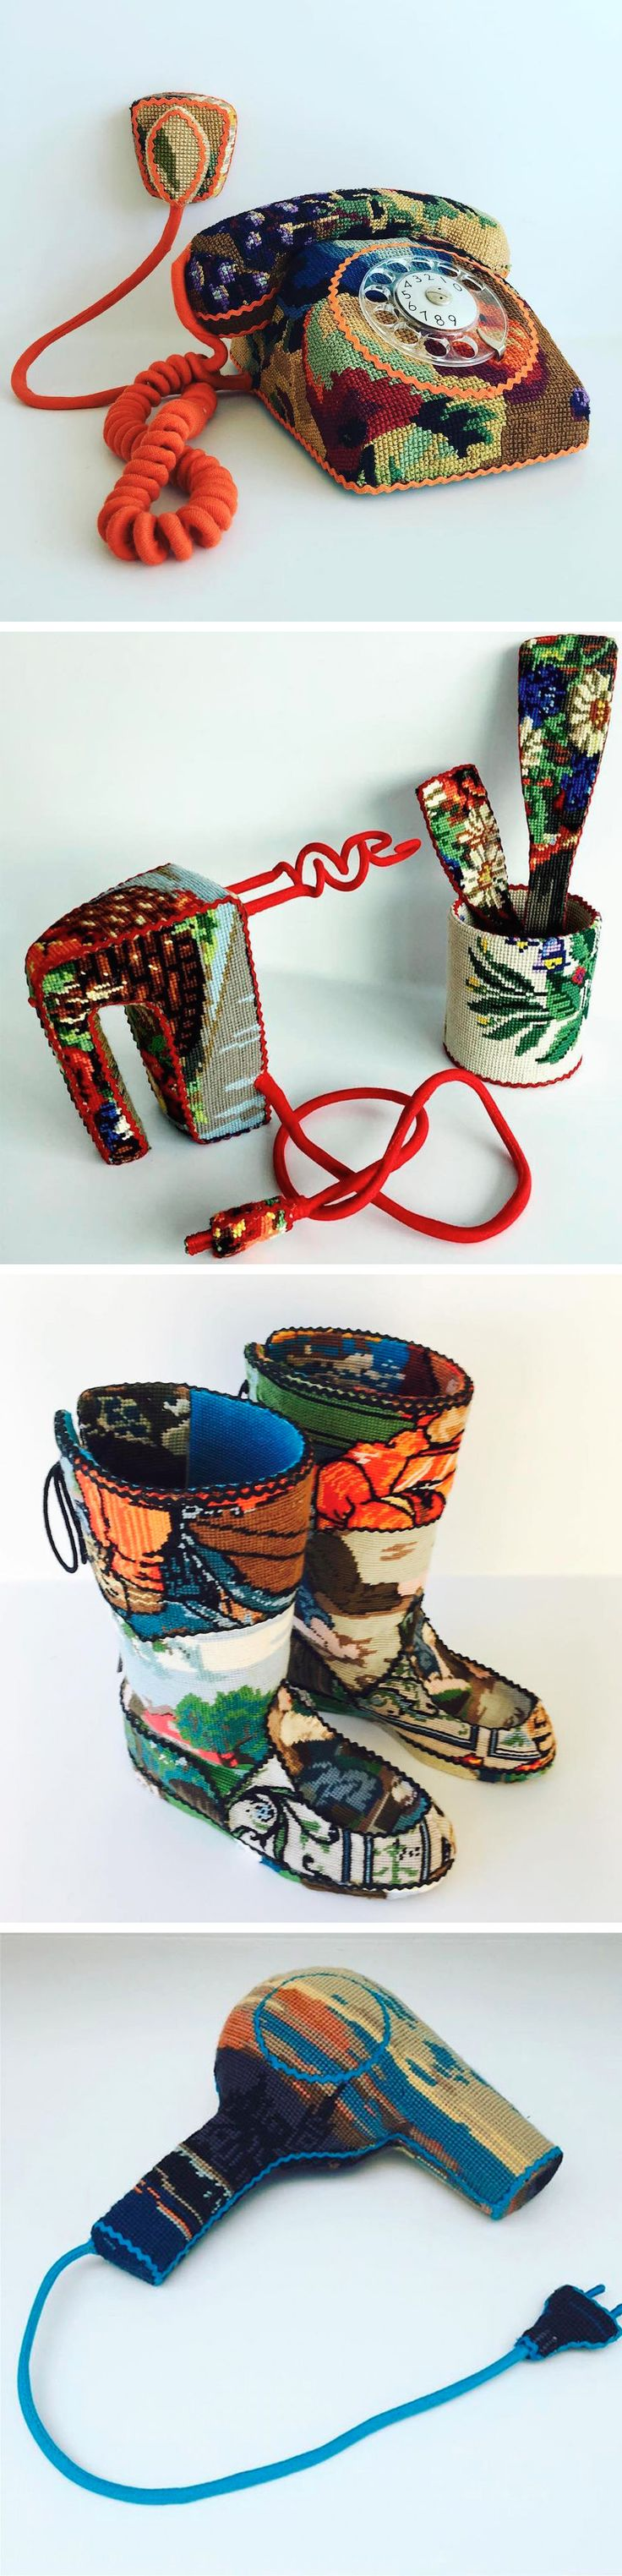 Household Objects and Appliances Cross-Stitched by Ulla Stina Wikander